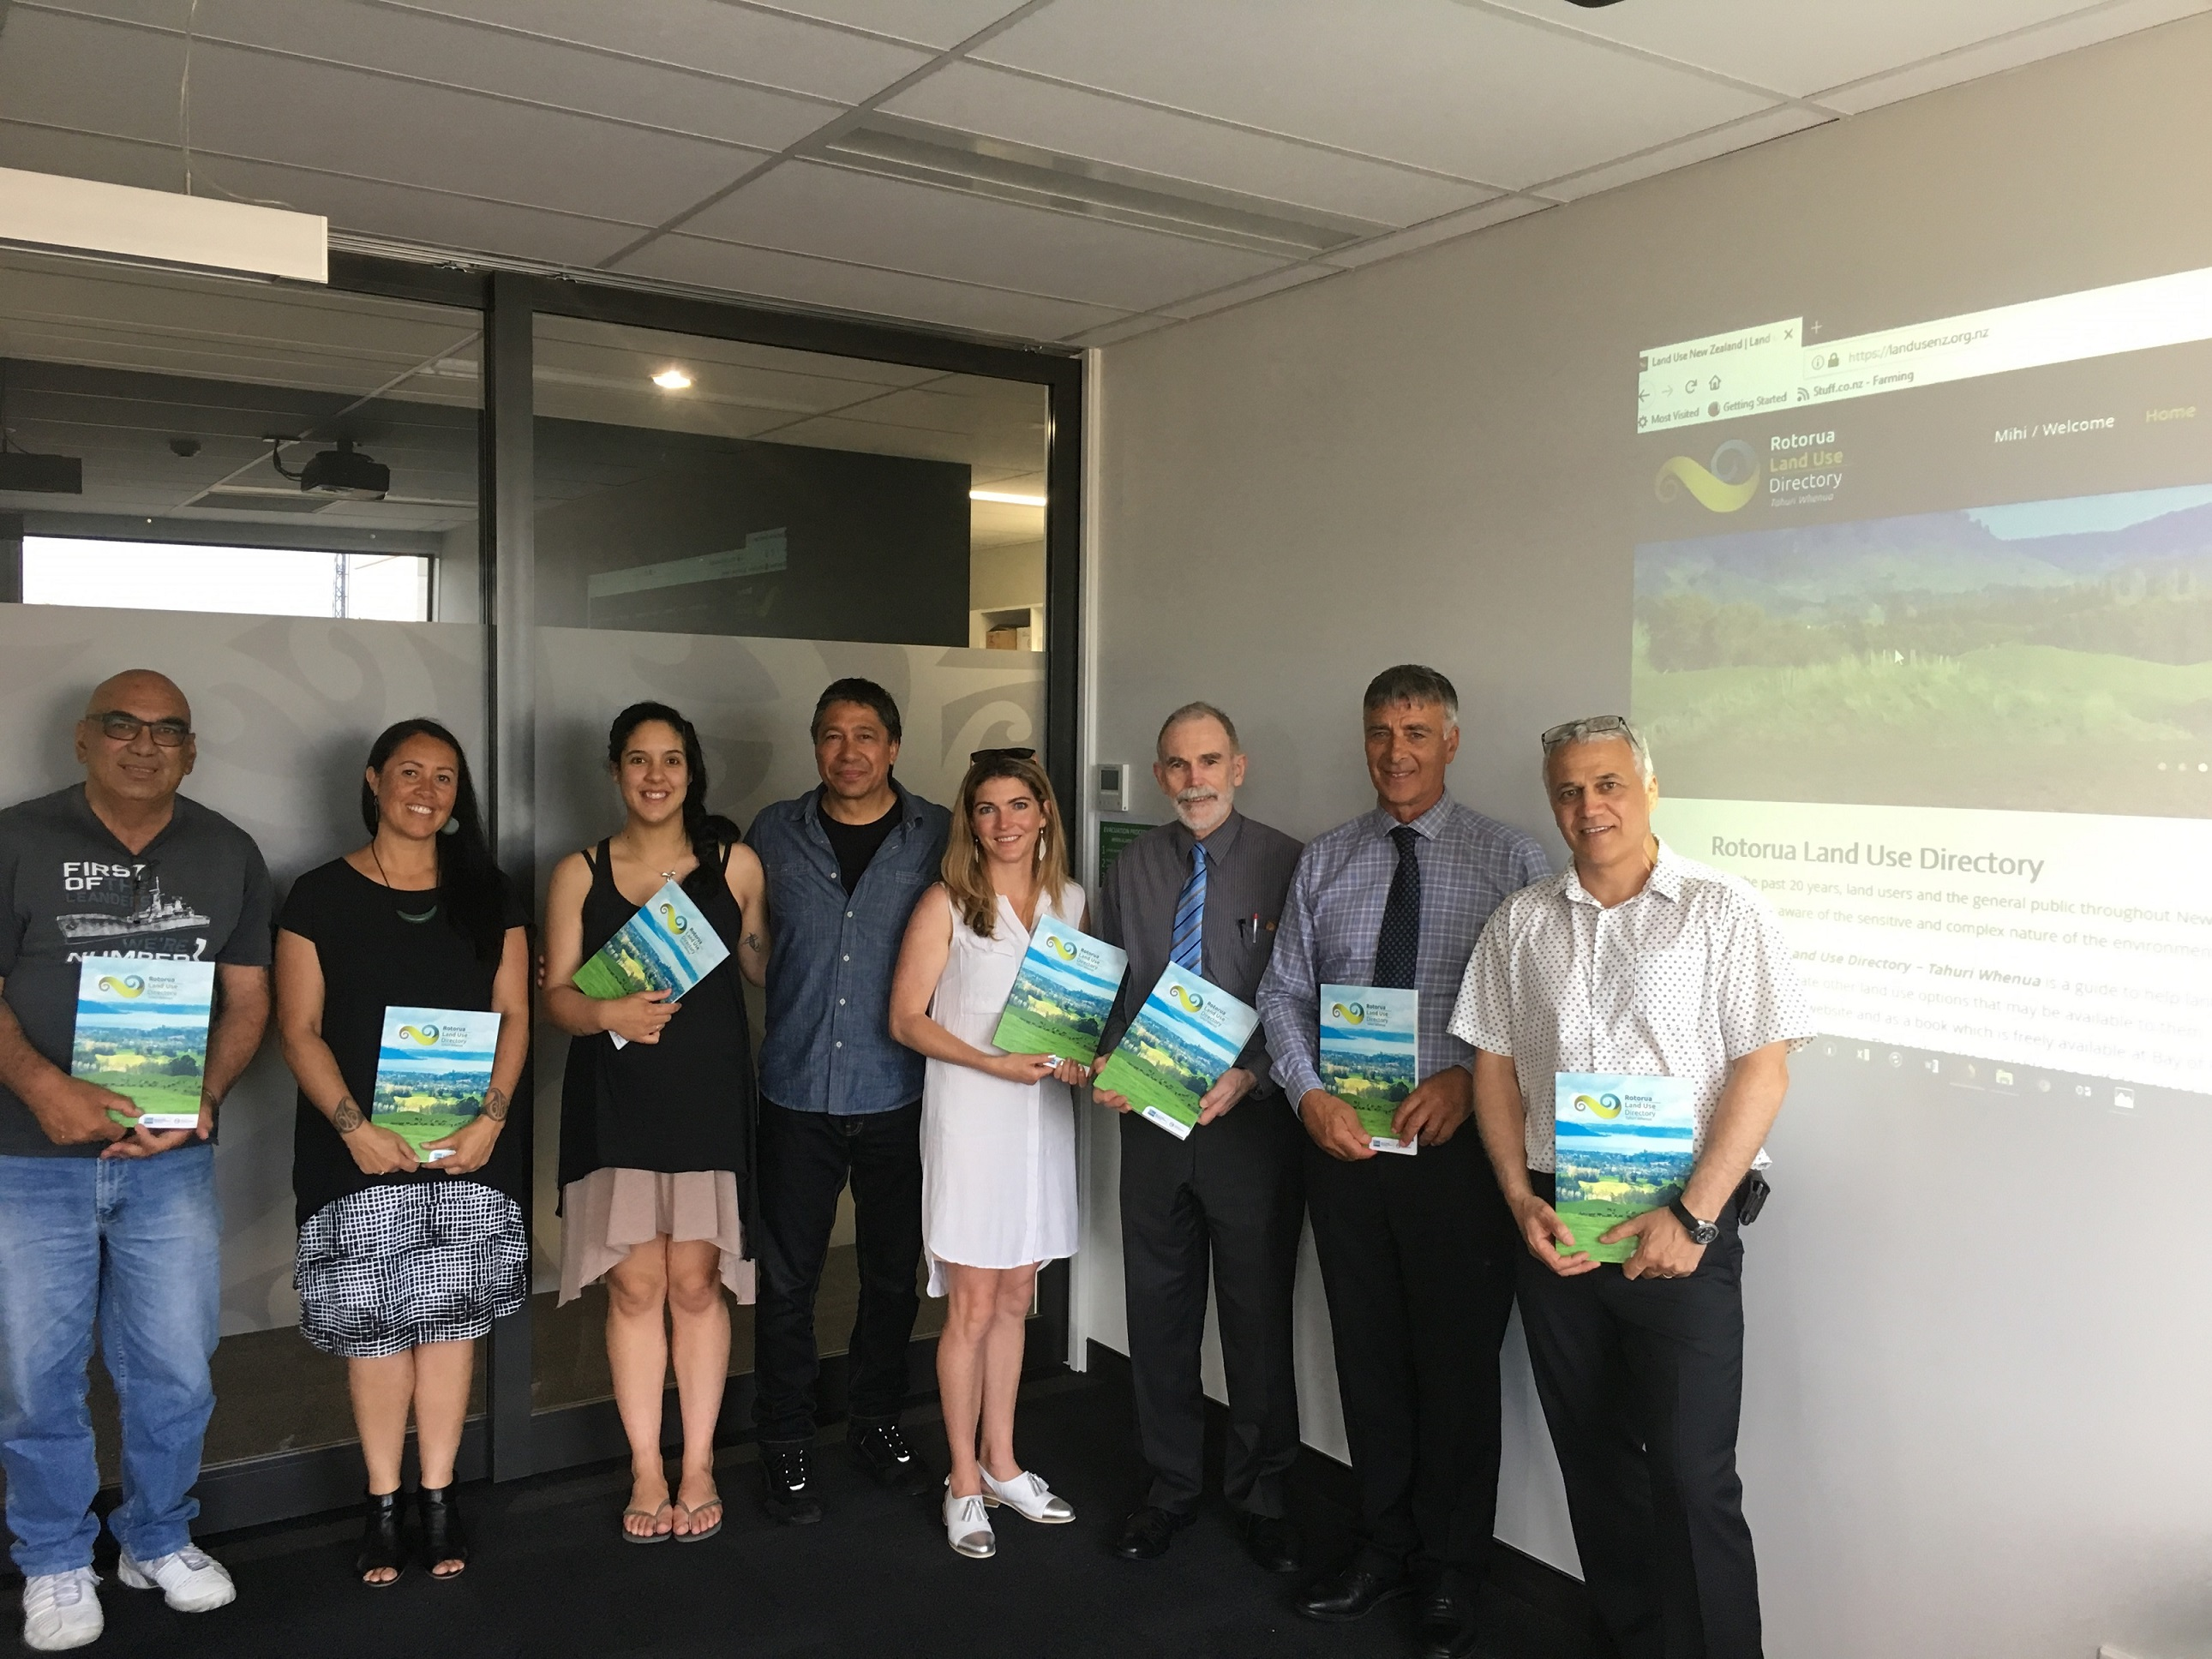 Lnluf Land Use Directory Launch